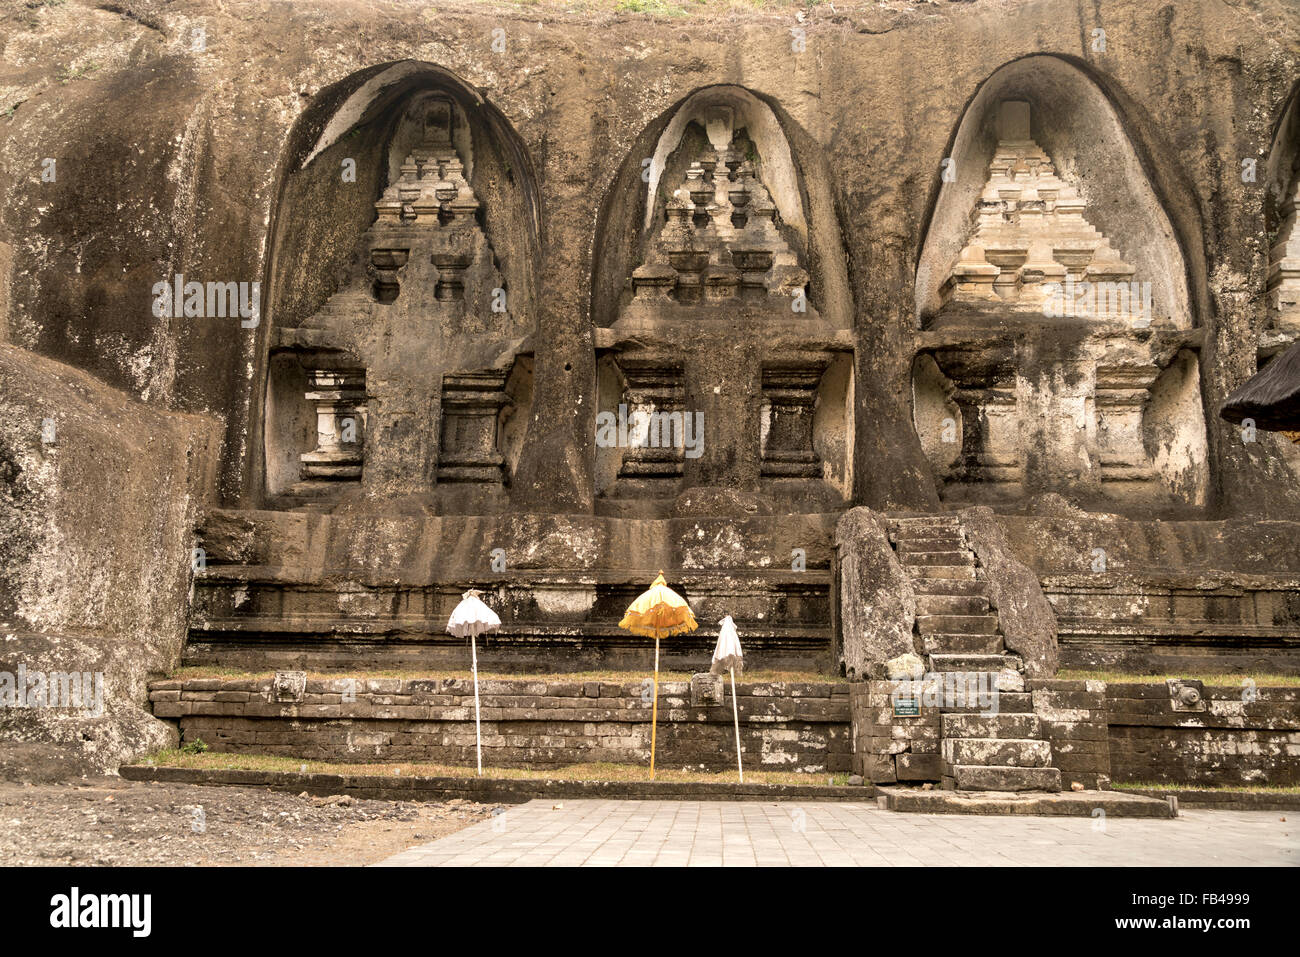 rock-cut candi shrines of  Gunung Kawi Temple, Tampaksiring near Ubud, Bali, Indonesia - Stock Image